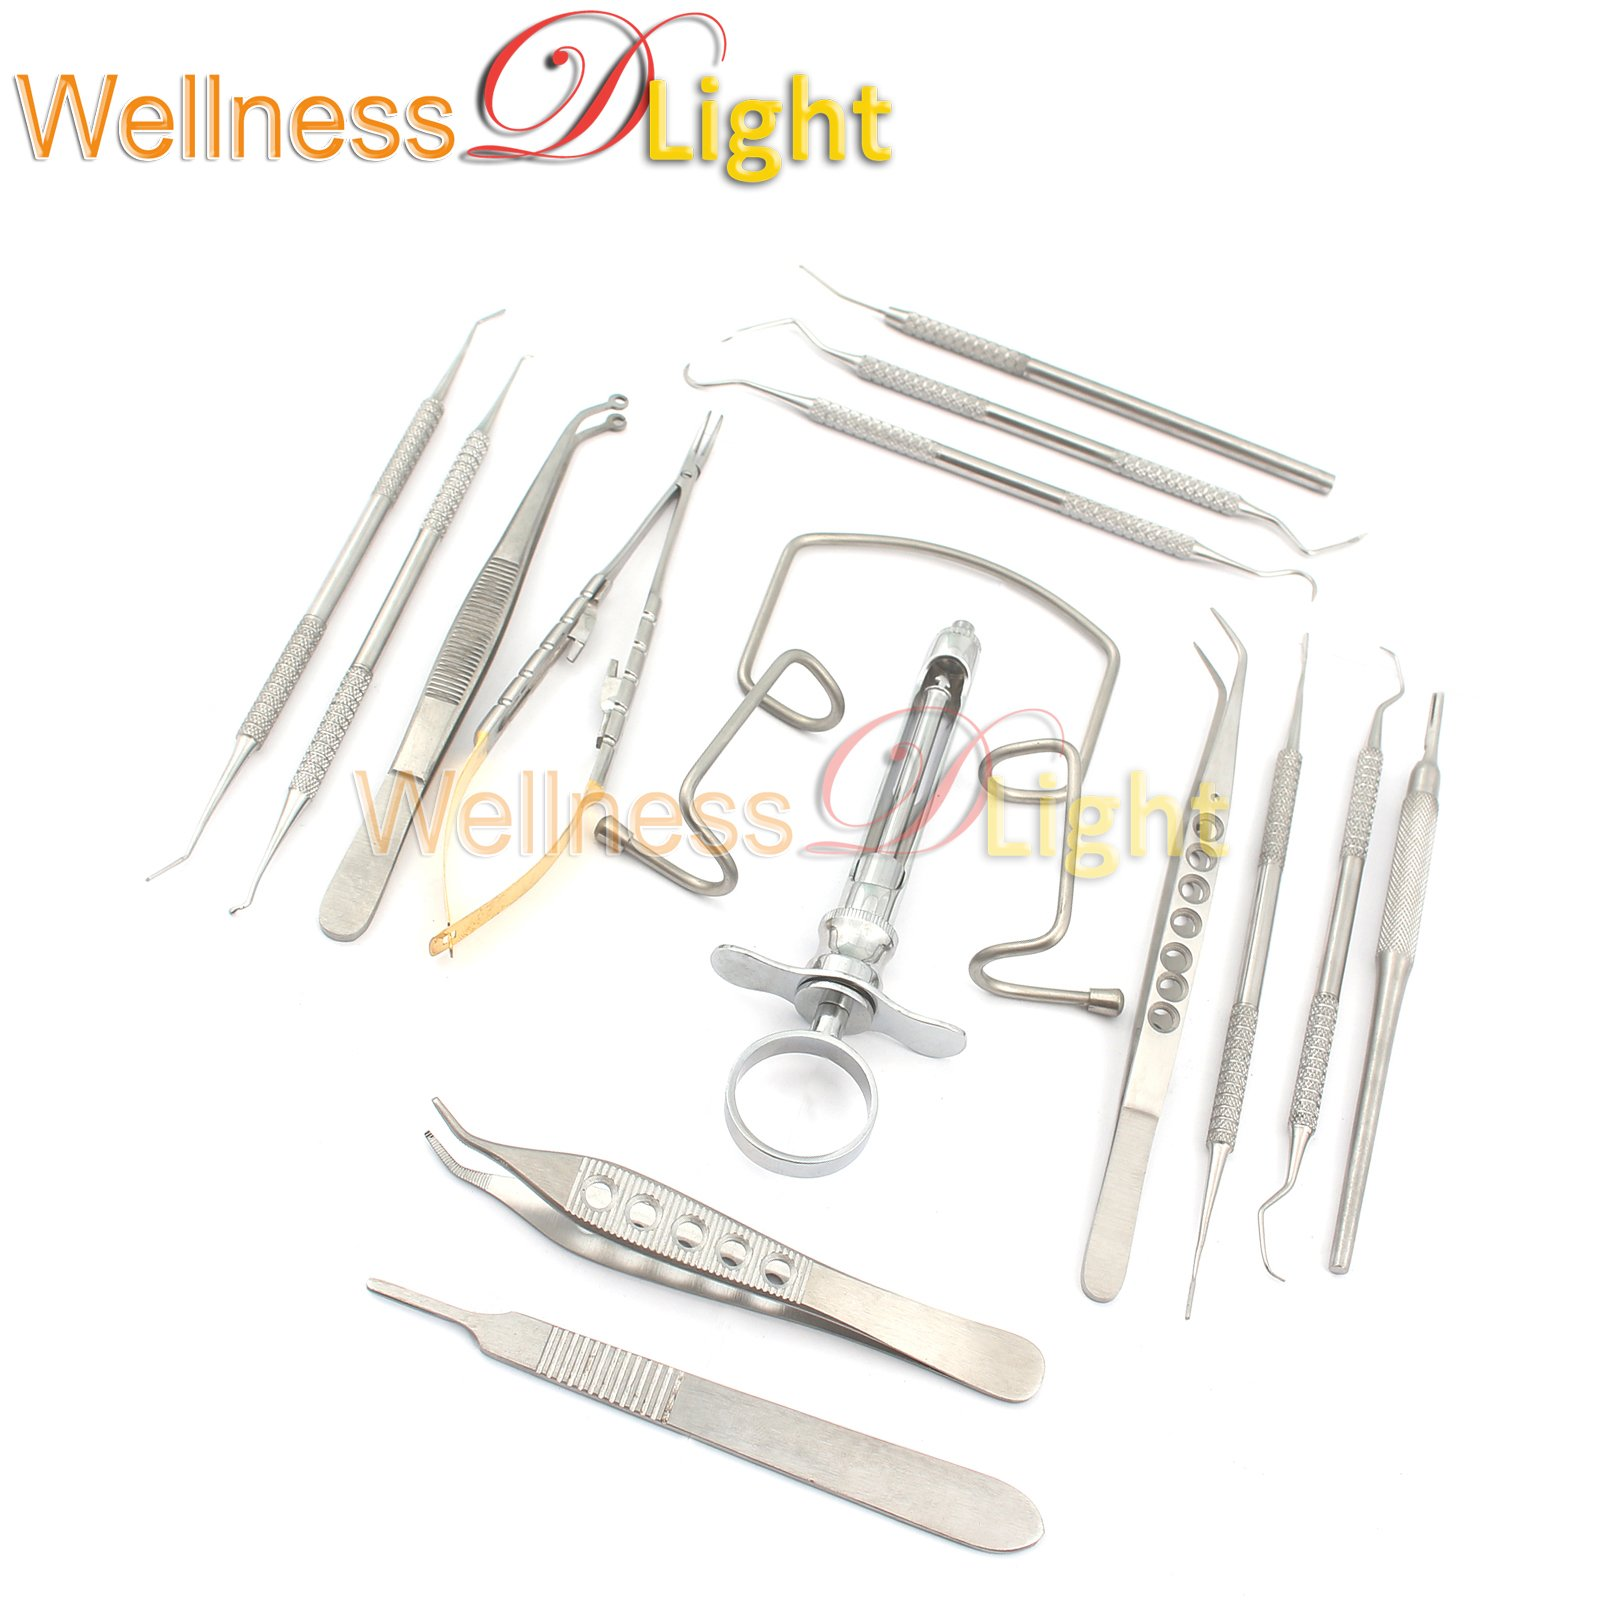 WDL PERIO PERIODONTAL KIT-2